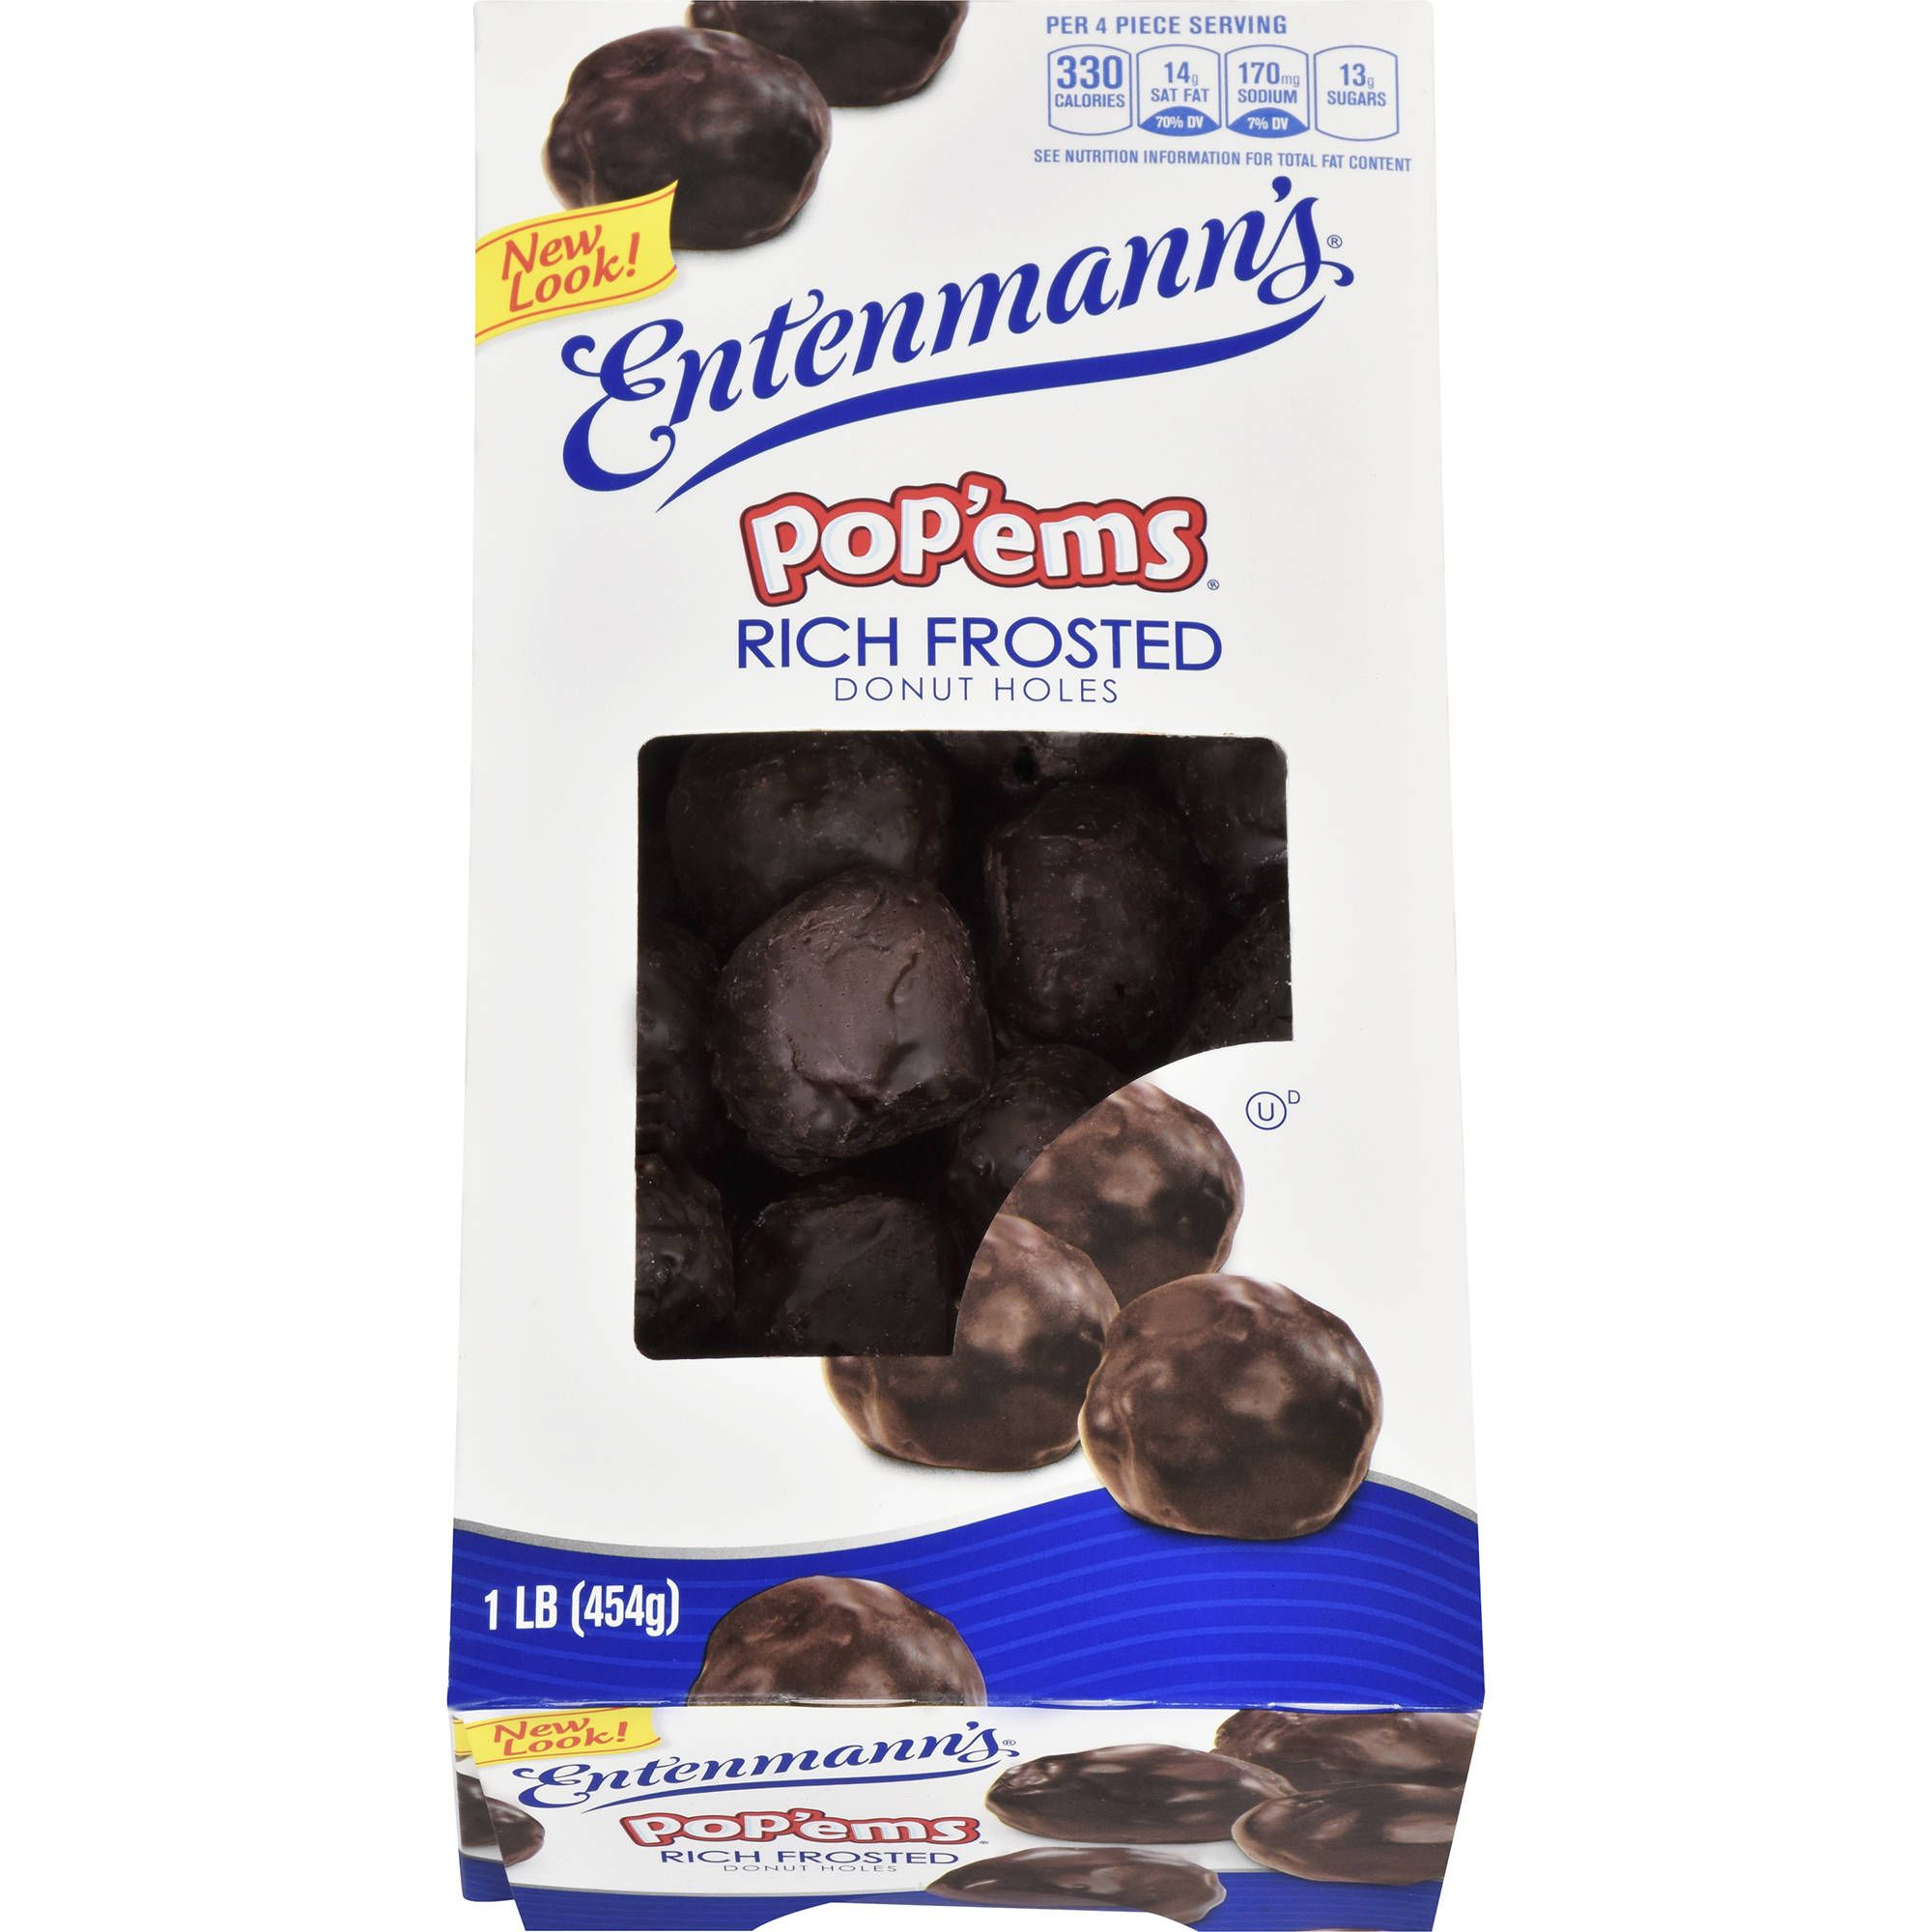 Entenmanns Popems Rich Frosted Donut Holes 1 Lb